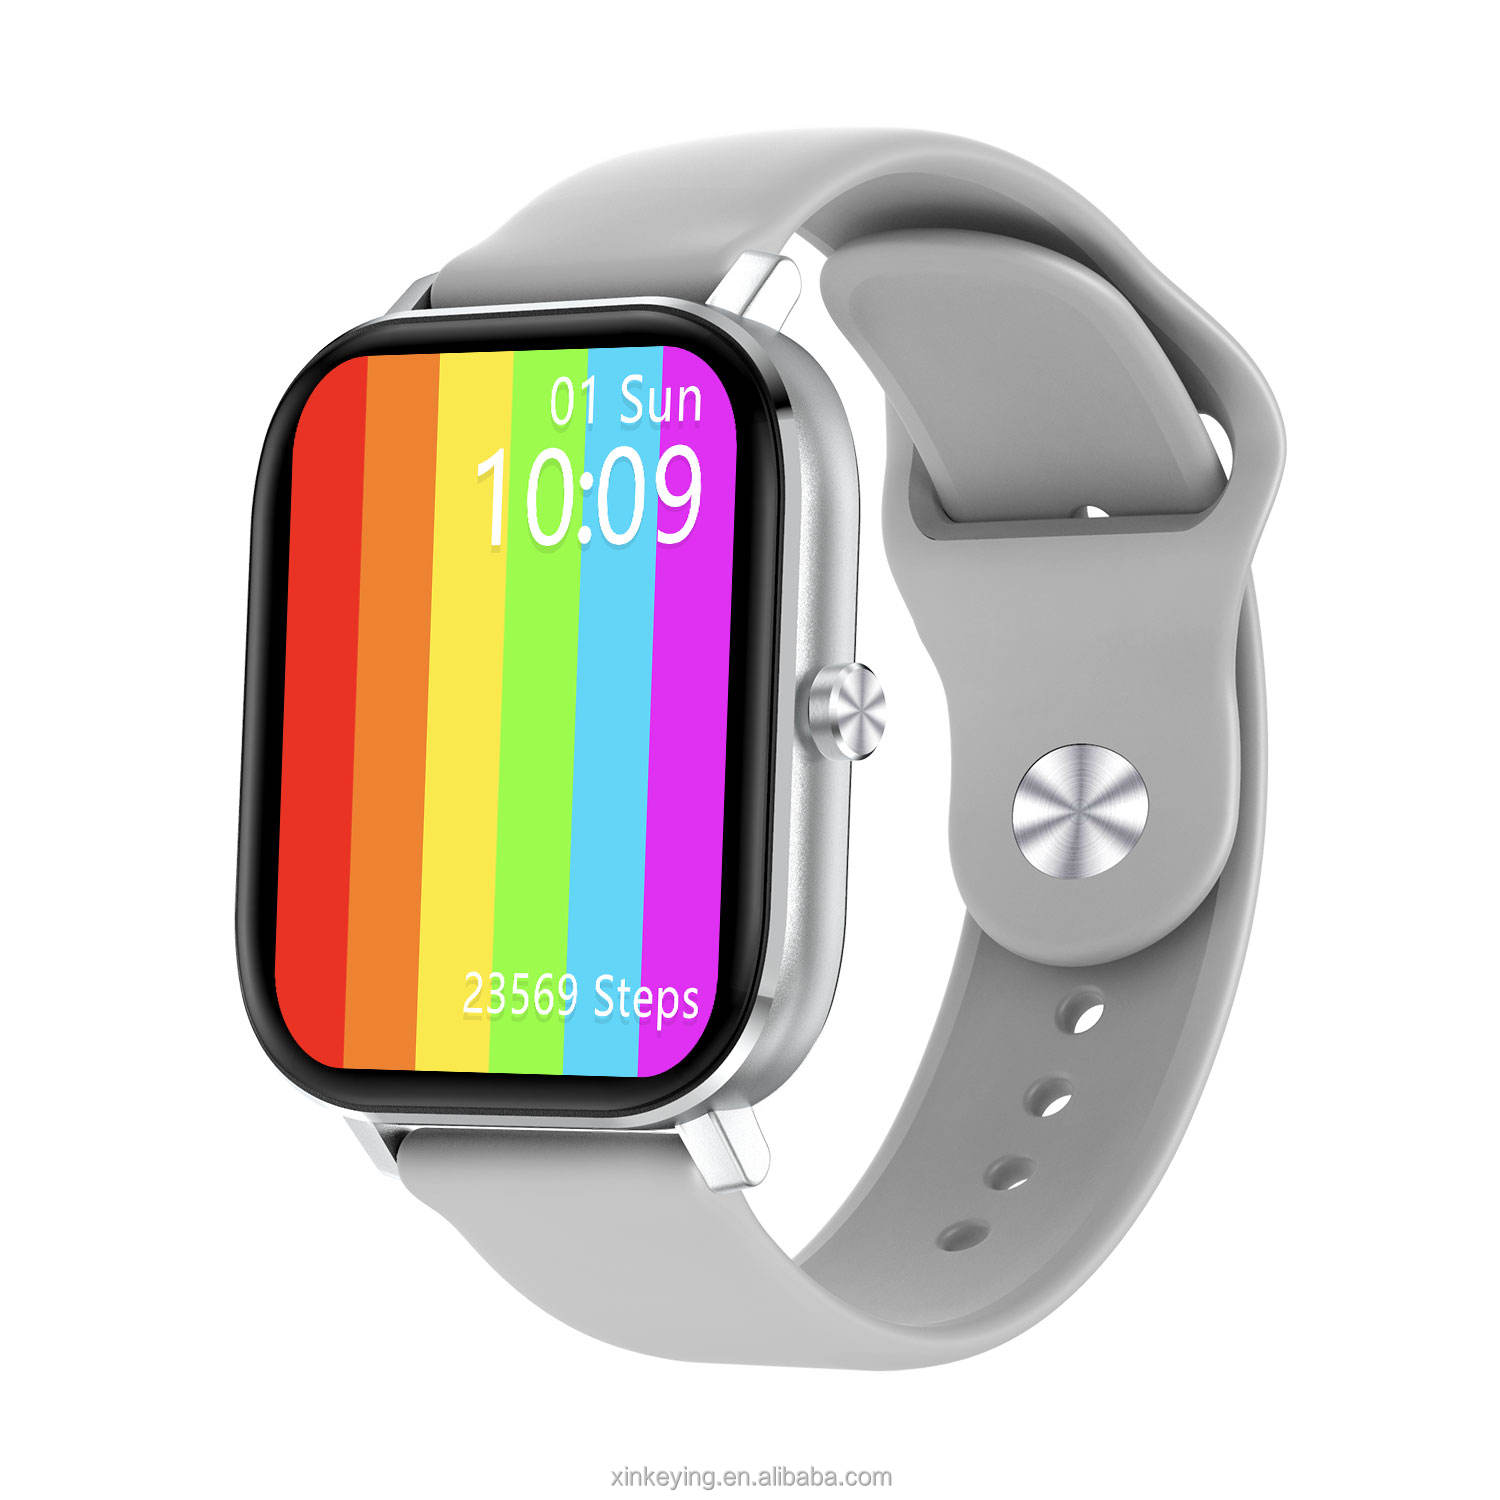 Designer Watches Waterproof Drop Shipping ROHS Android Reloj Music Hw22 4g Smart Watch T500 For Kids With Oled Display IP67 Waterproof Smartwatch